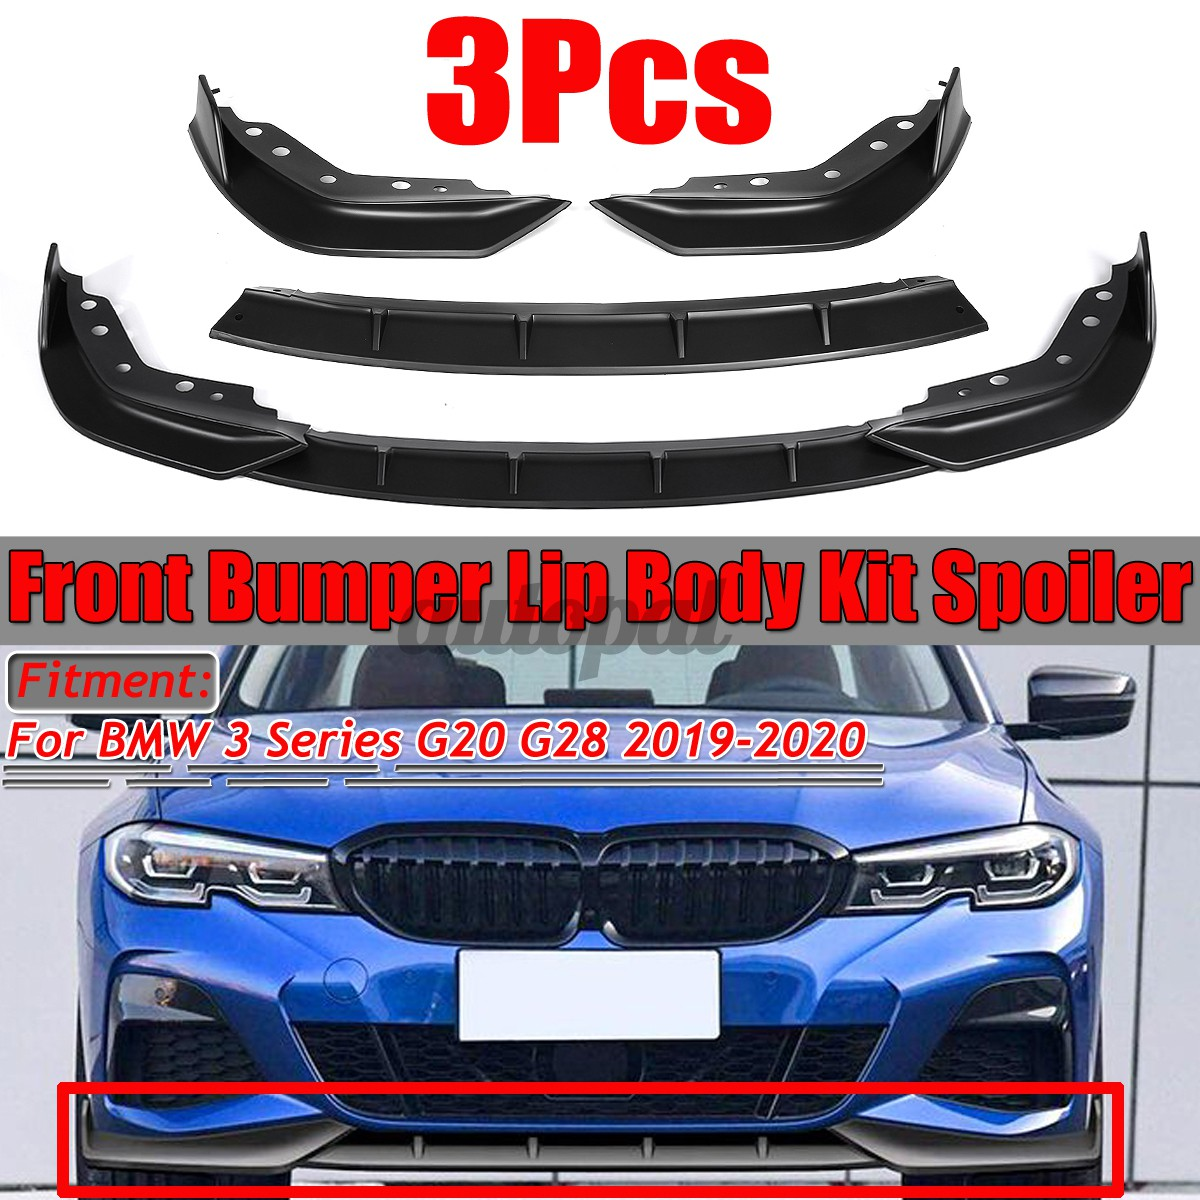 For Bmw 3 Series G20 G28 2019 2020 Front Bumper Lip Body Kit Spoiler Splitter Matte Black Shopee Singapore